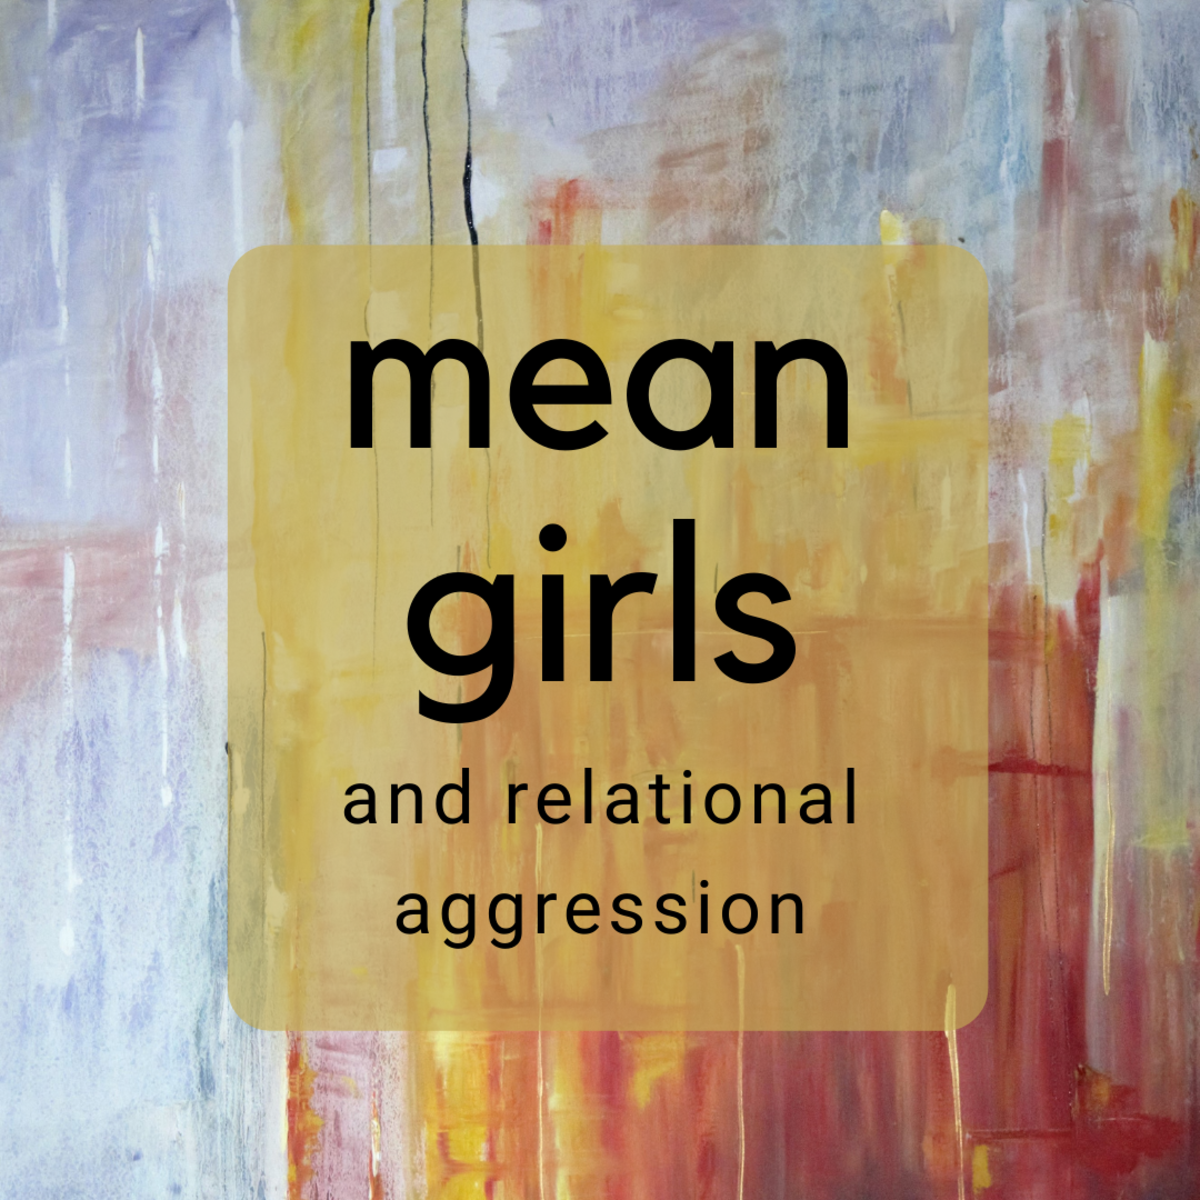 Rather than deal with the matter at hand in a direct manner, some women opt to backstab, gossip, and stereotype.